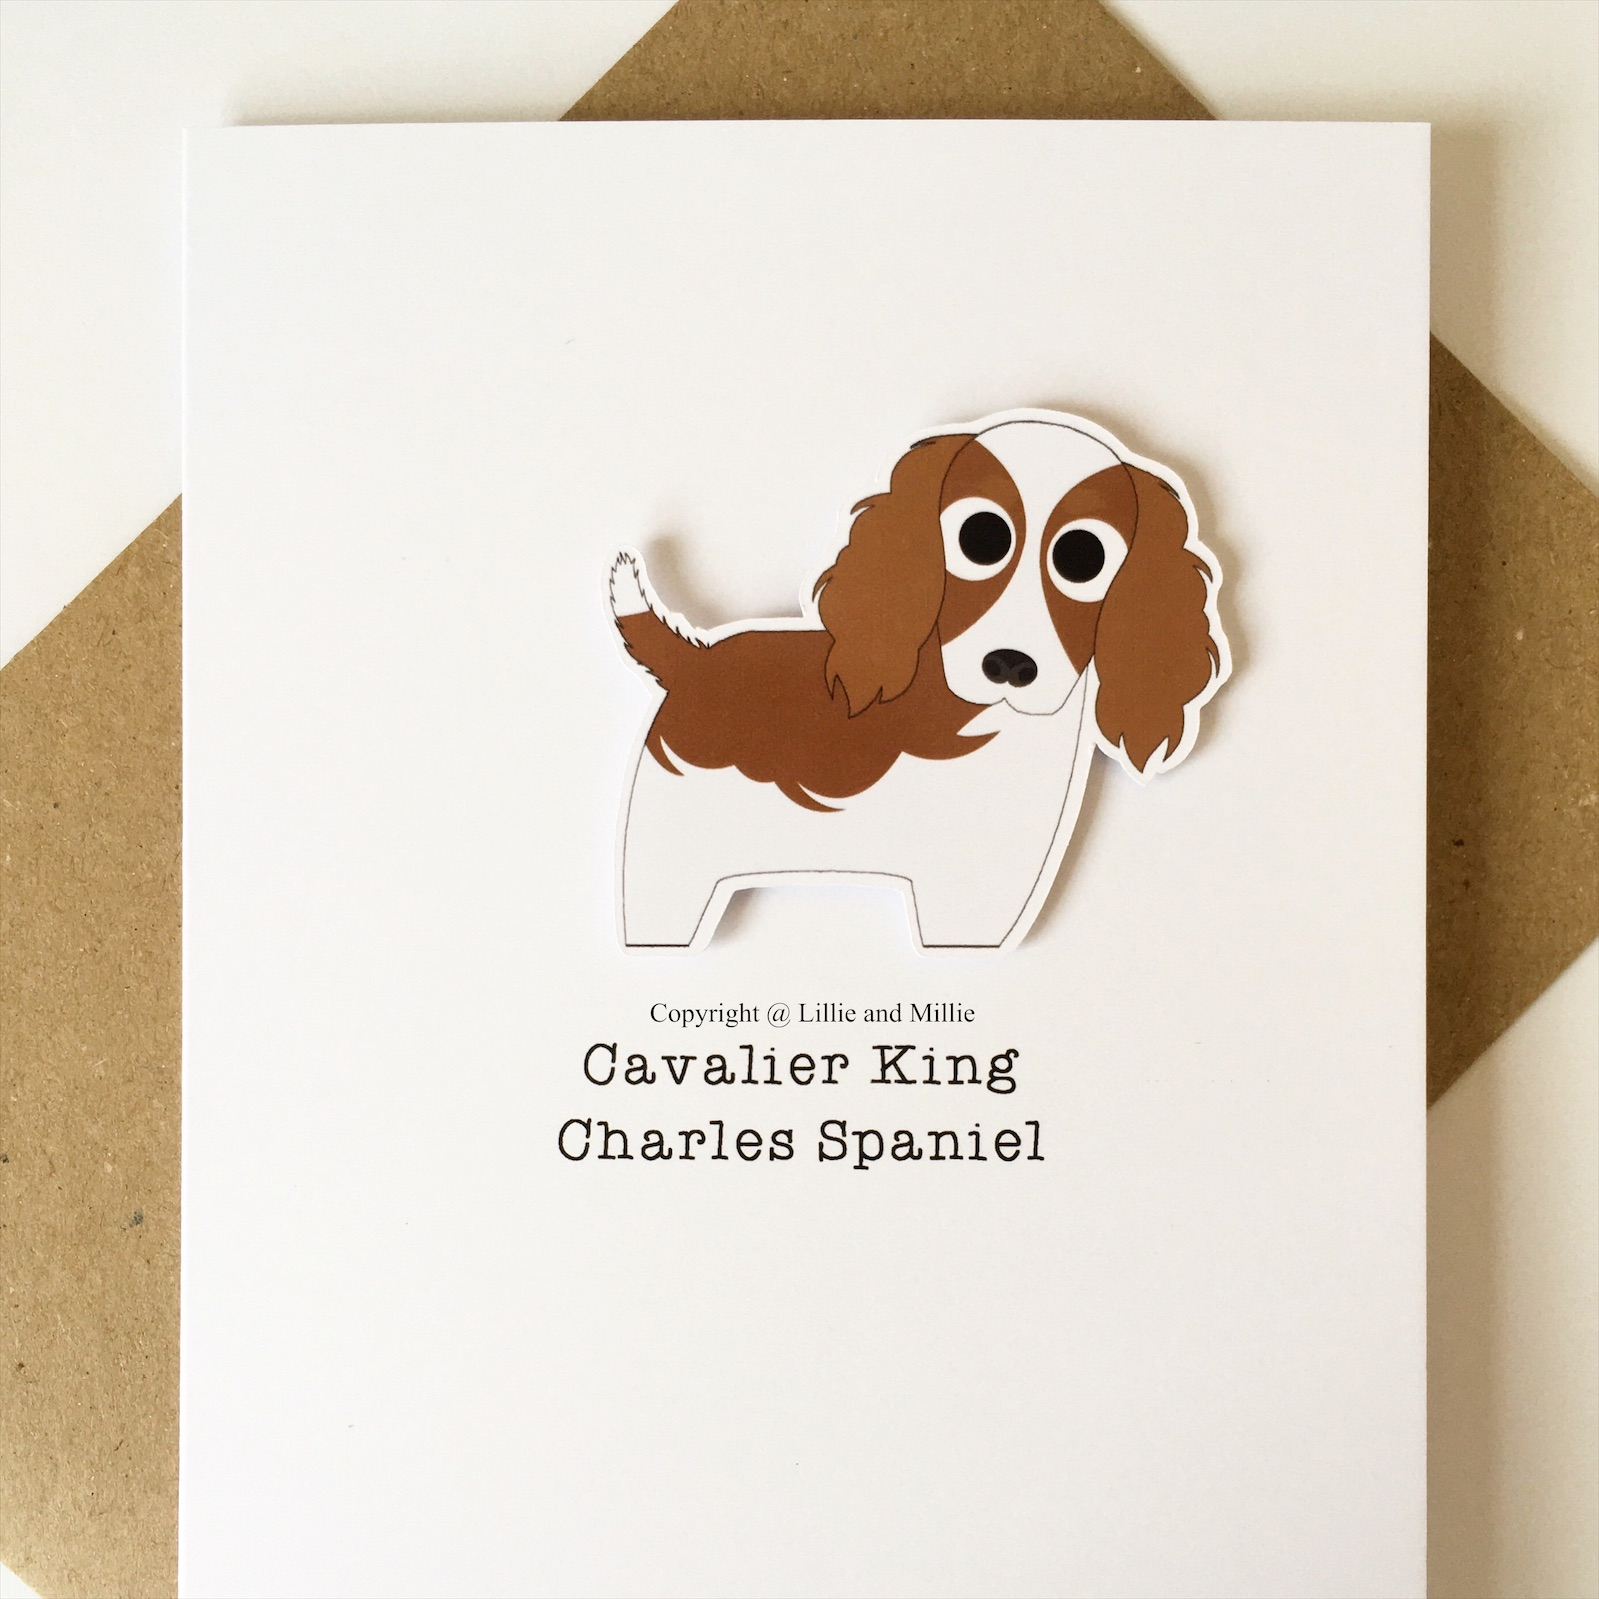 Cute and Cuddly Cavalier King Charles Dog Greetings Card